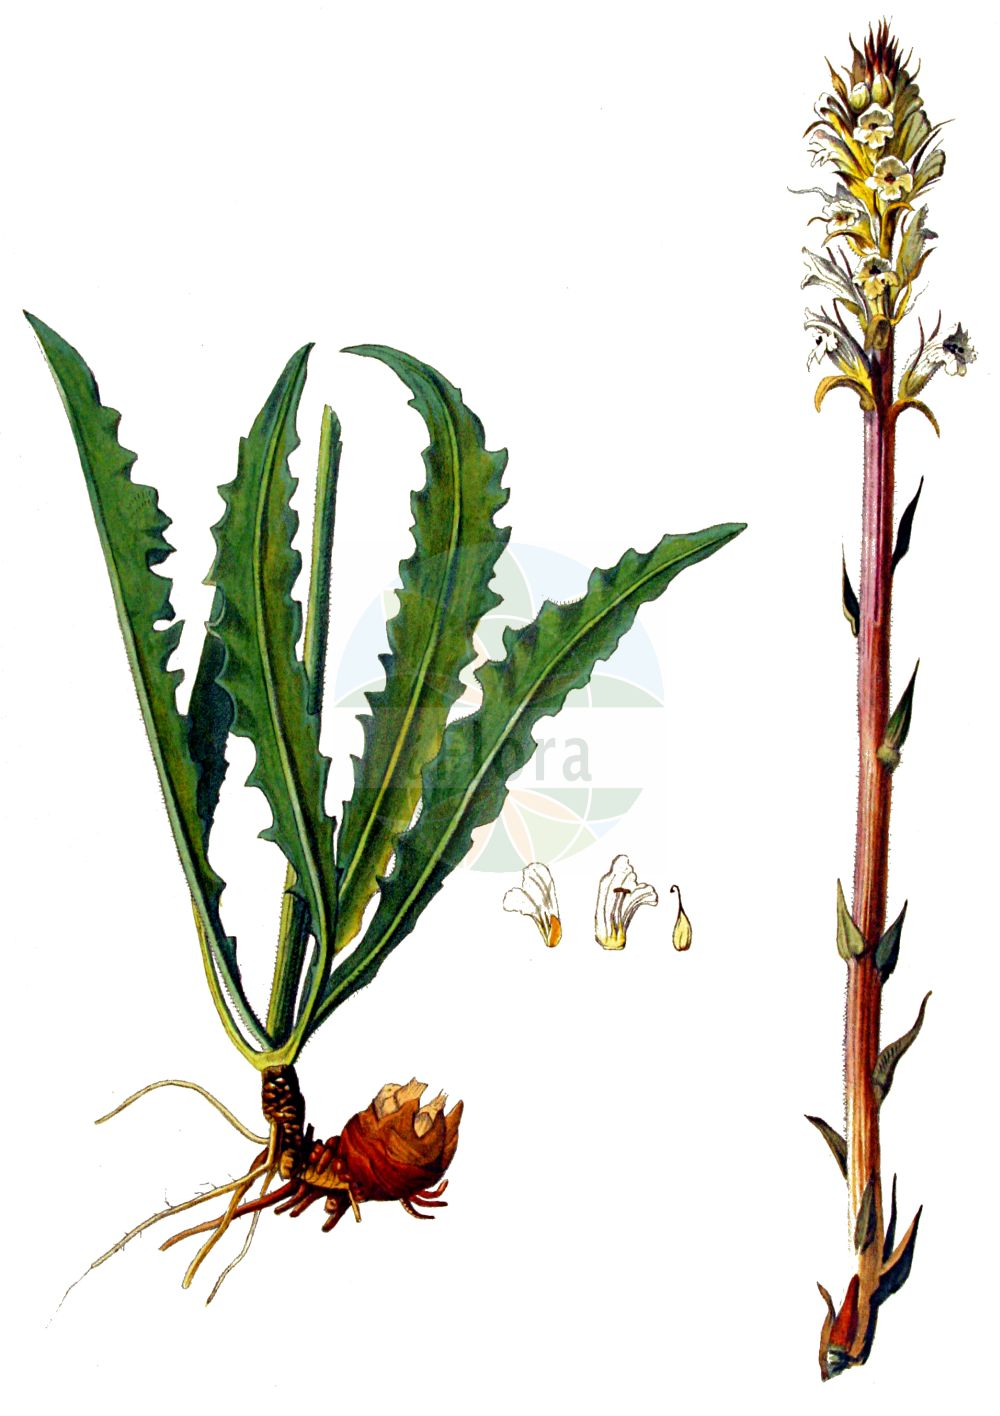 Historische Abbildung von Orobanche picridis (Panzer-Sommerwurz - Oxtongue Broomrape). Das Bild zeigt Blatt, Bluete, Frucht und Same. ---- Historical Drawing of Orobanche picridis (Panzer-Sommerwurz - Oxtongue Broomrape).The image is showing leaf, flower, fruit and seed.(Orobanche picridis,Panzer-Sommerwurz,Oxtongue Broomrape,Orobanche ambigua,Orobanche artemisiae,Orobanche artemisiae-campestris,Orobanche carotae,Orobanche centaurina,Orobanche hieracii-pilosellae,Orobanche lilacina,Orobanche loricata,Orobanche picridis,Orobanche picridis-hieracioidis,Orobanche santolinae,Orobanche scolymi,Panzer-Sommerwurz,Oxtongue Broomrape,Mugwort Broomrape,Orobanche,Sommerwurz,Broomrape,Orobanchaceae,Sommerwurzgewaechse,Broomrape family,Blatt,Bluete,Frucht,Same,leaf,flower,fruit,seed,Kops (1800-1934))